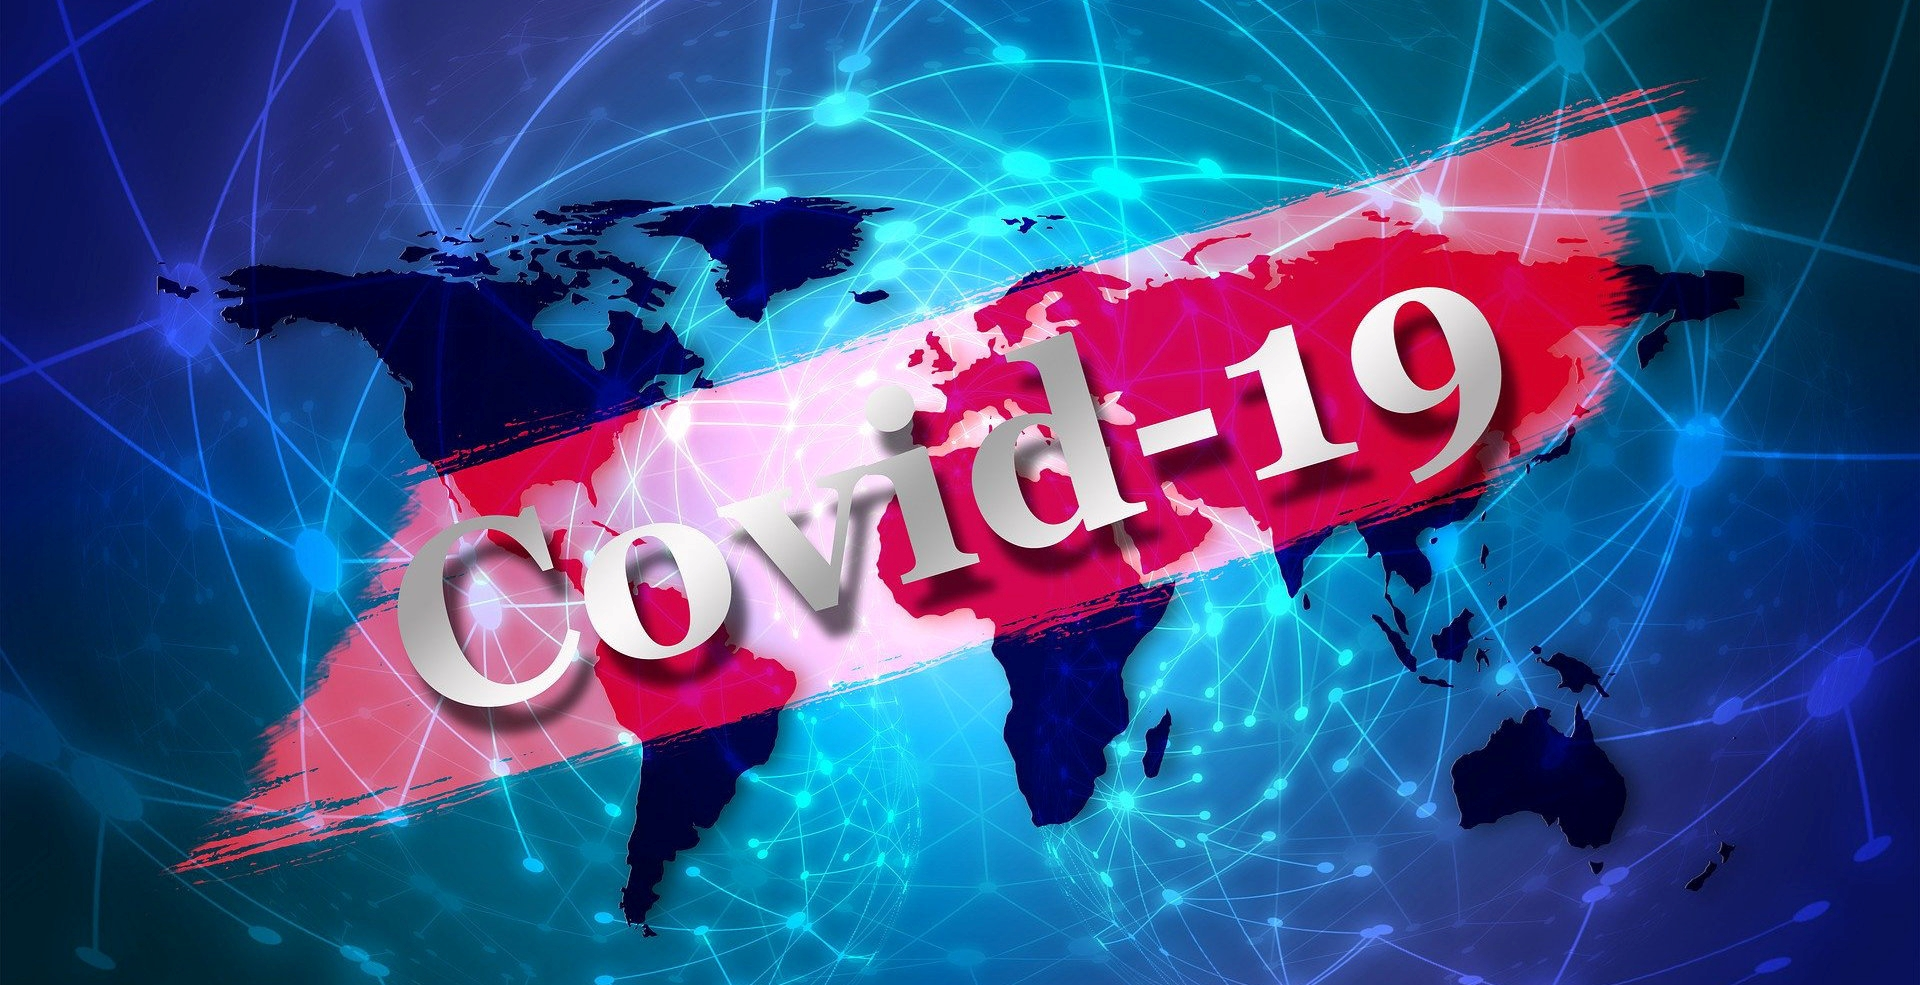 Covid-19 illustration